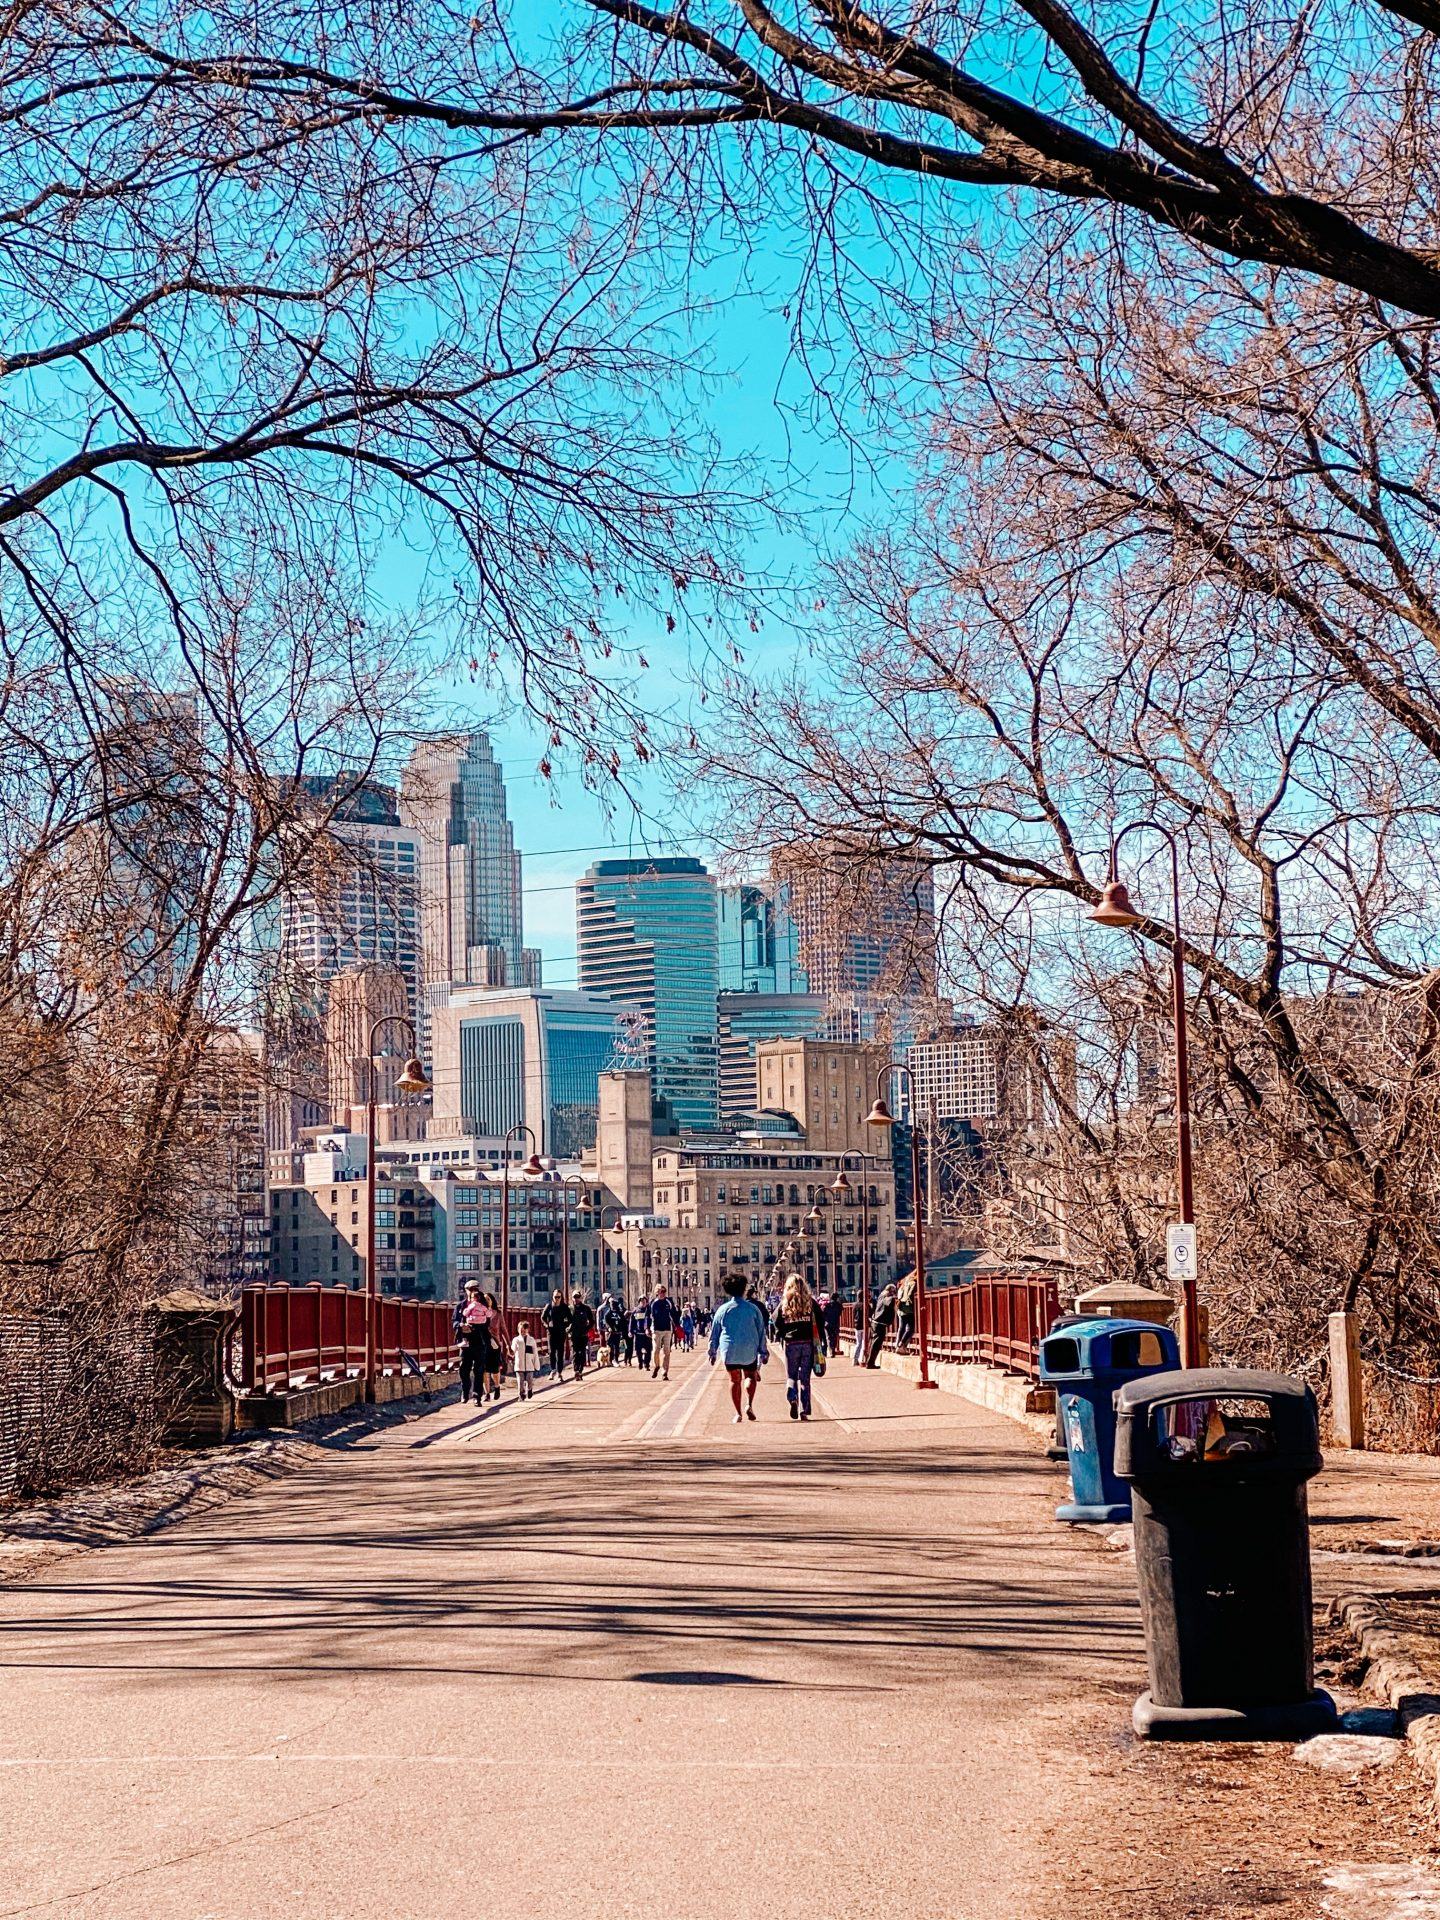 View of downtown Minneapolis from the Stone Arch pedestrian bridge